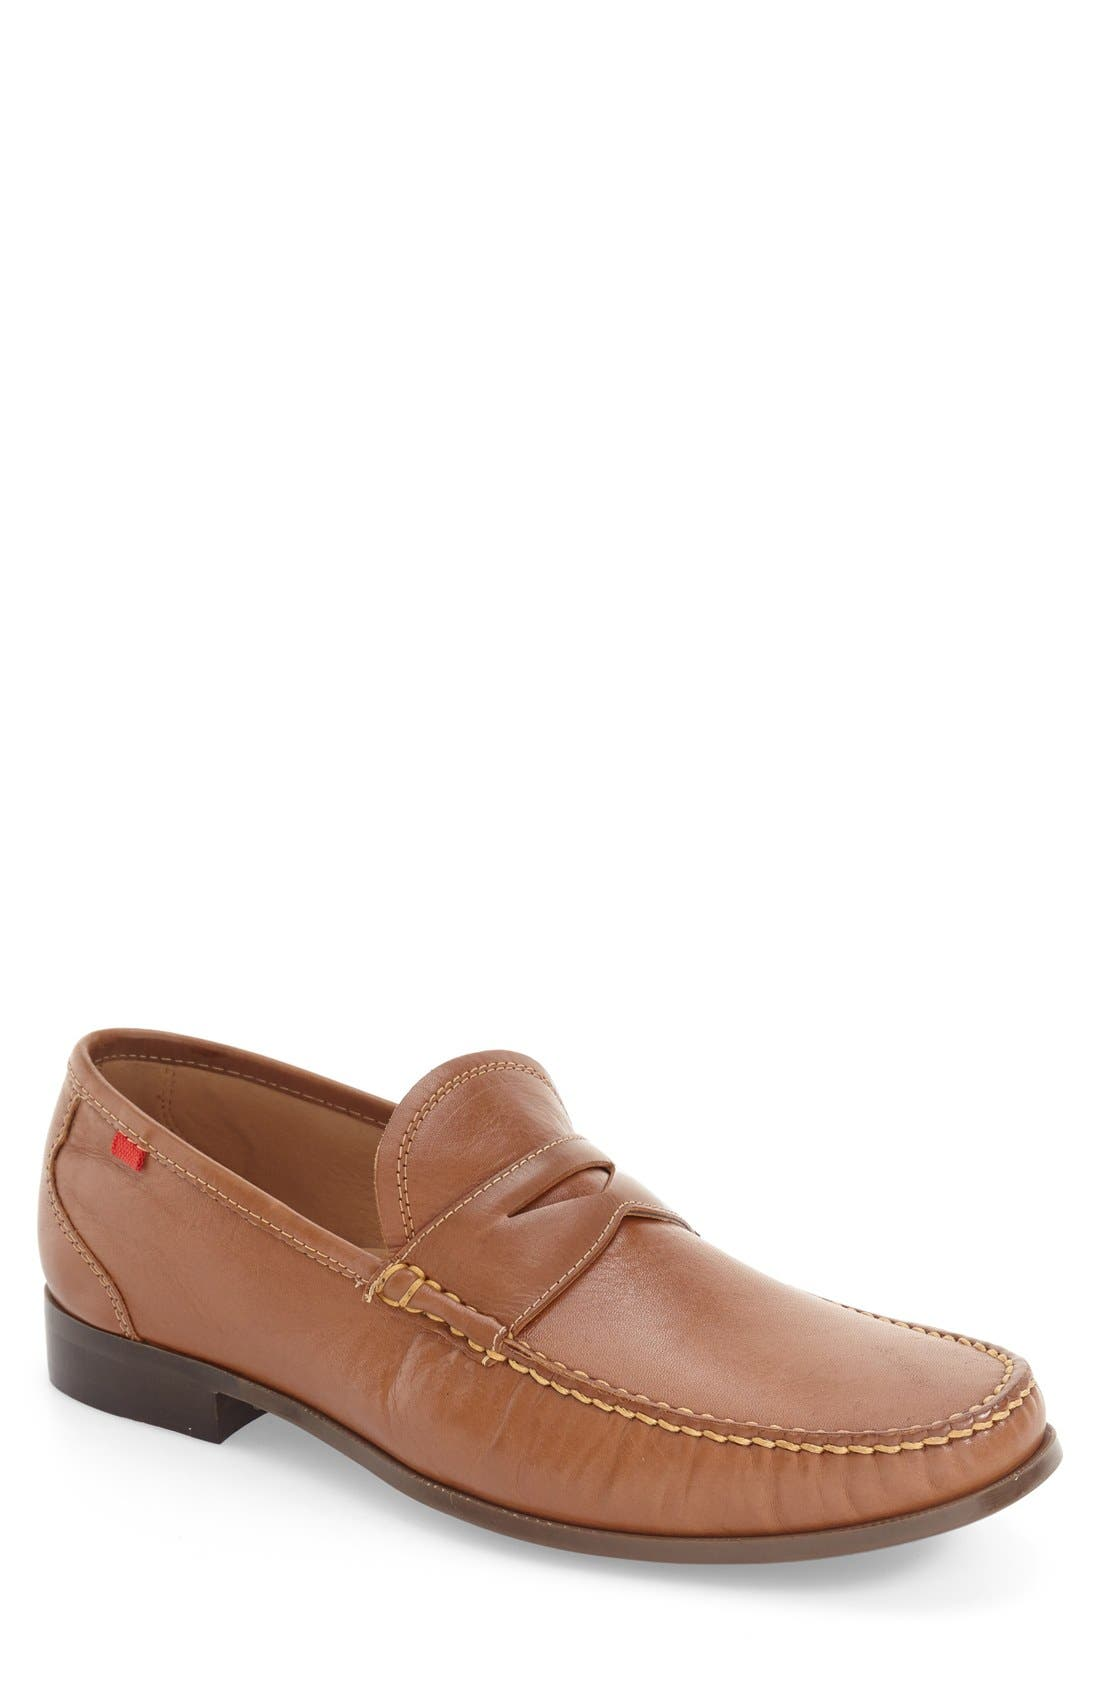 Penny Loafer,                             Main thumbnail 1, color,                             Brown Leather